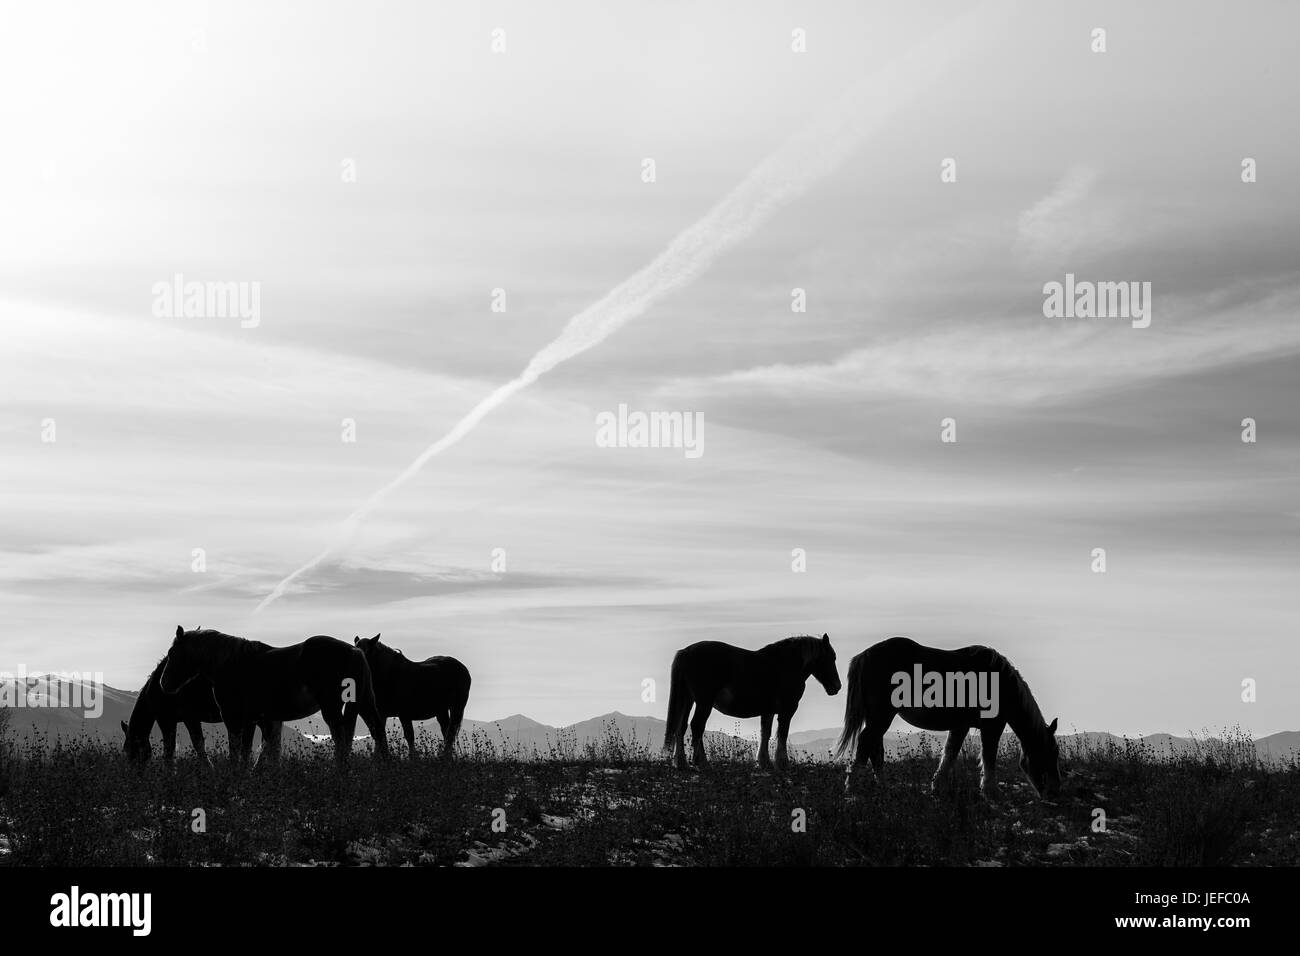 Some horses silhouettes on top of a mountain, beneath a spacious sky with soft clouds - Stock Image